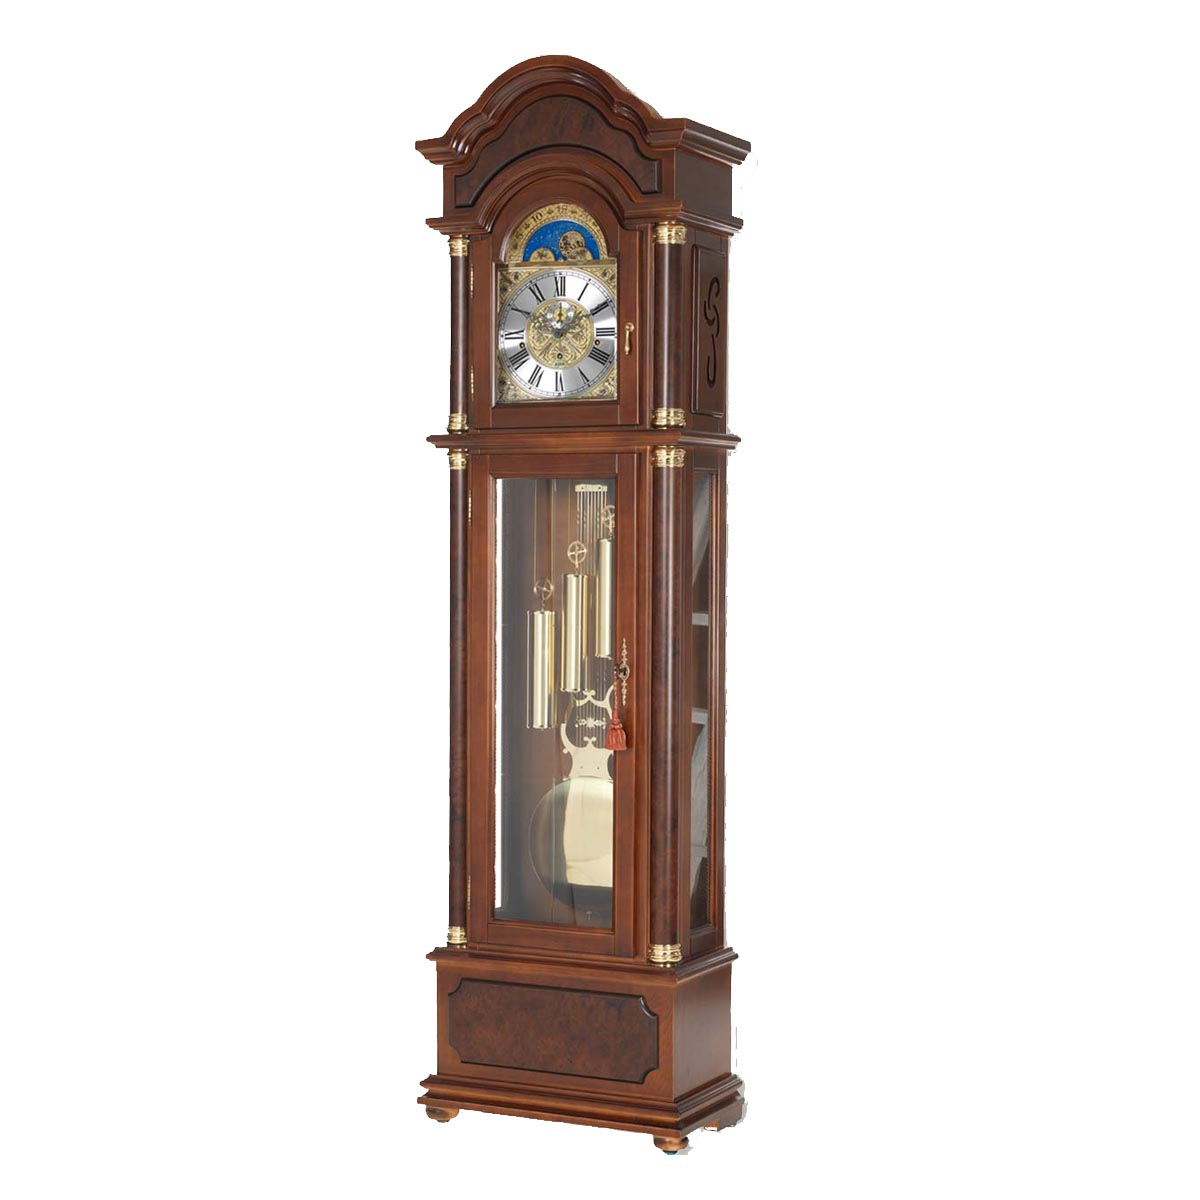 BURLINGTON-Walnut Grandfather Floor Clock